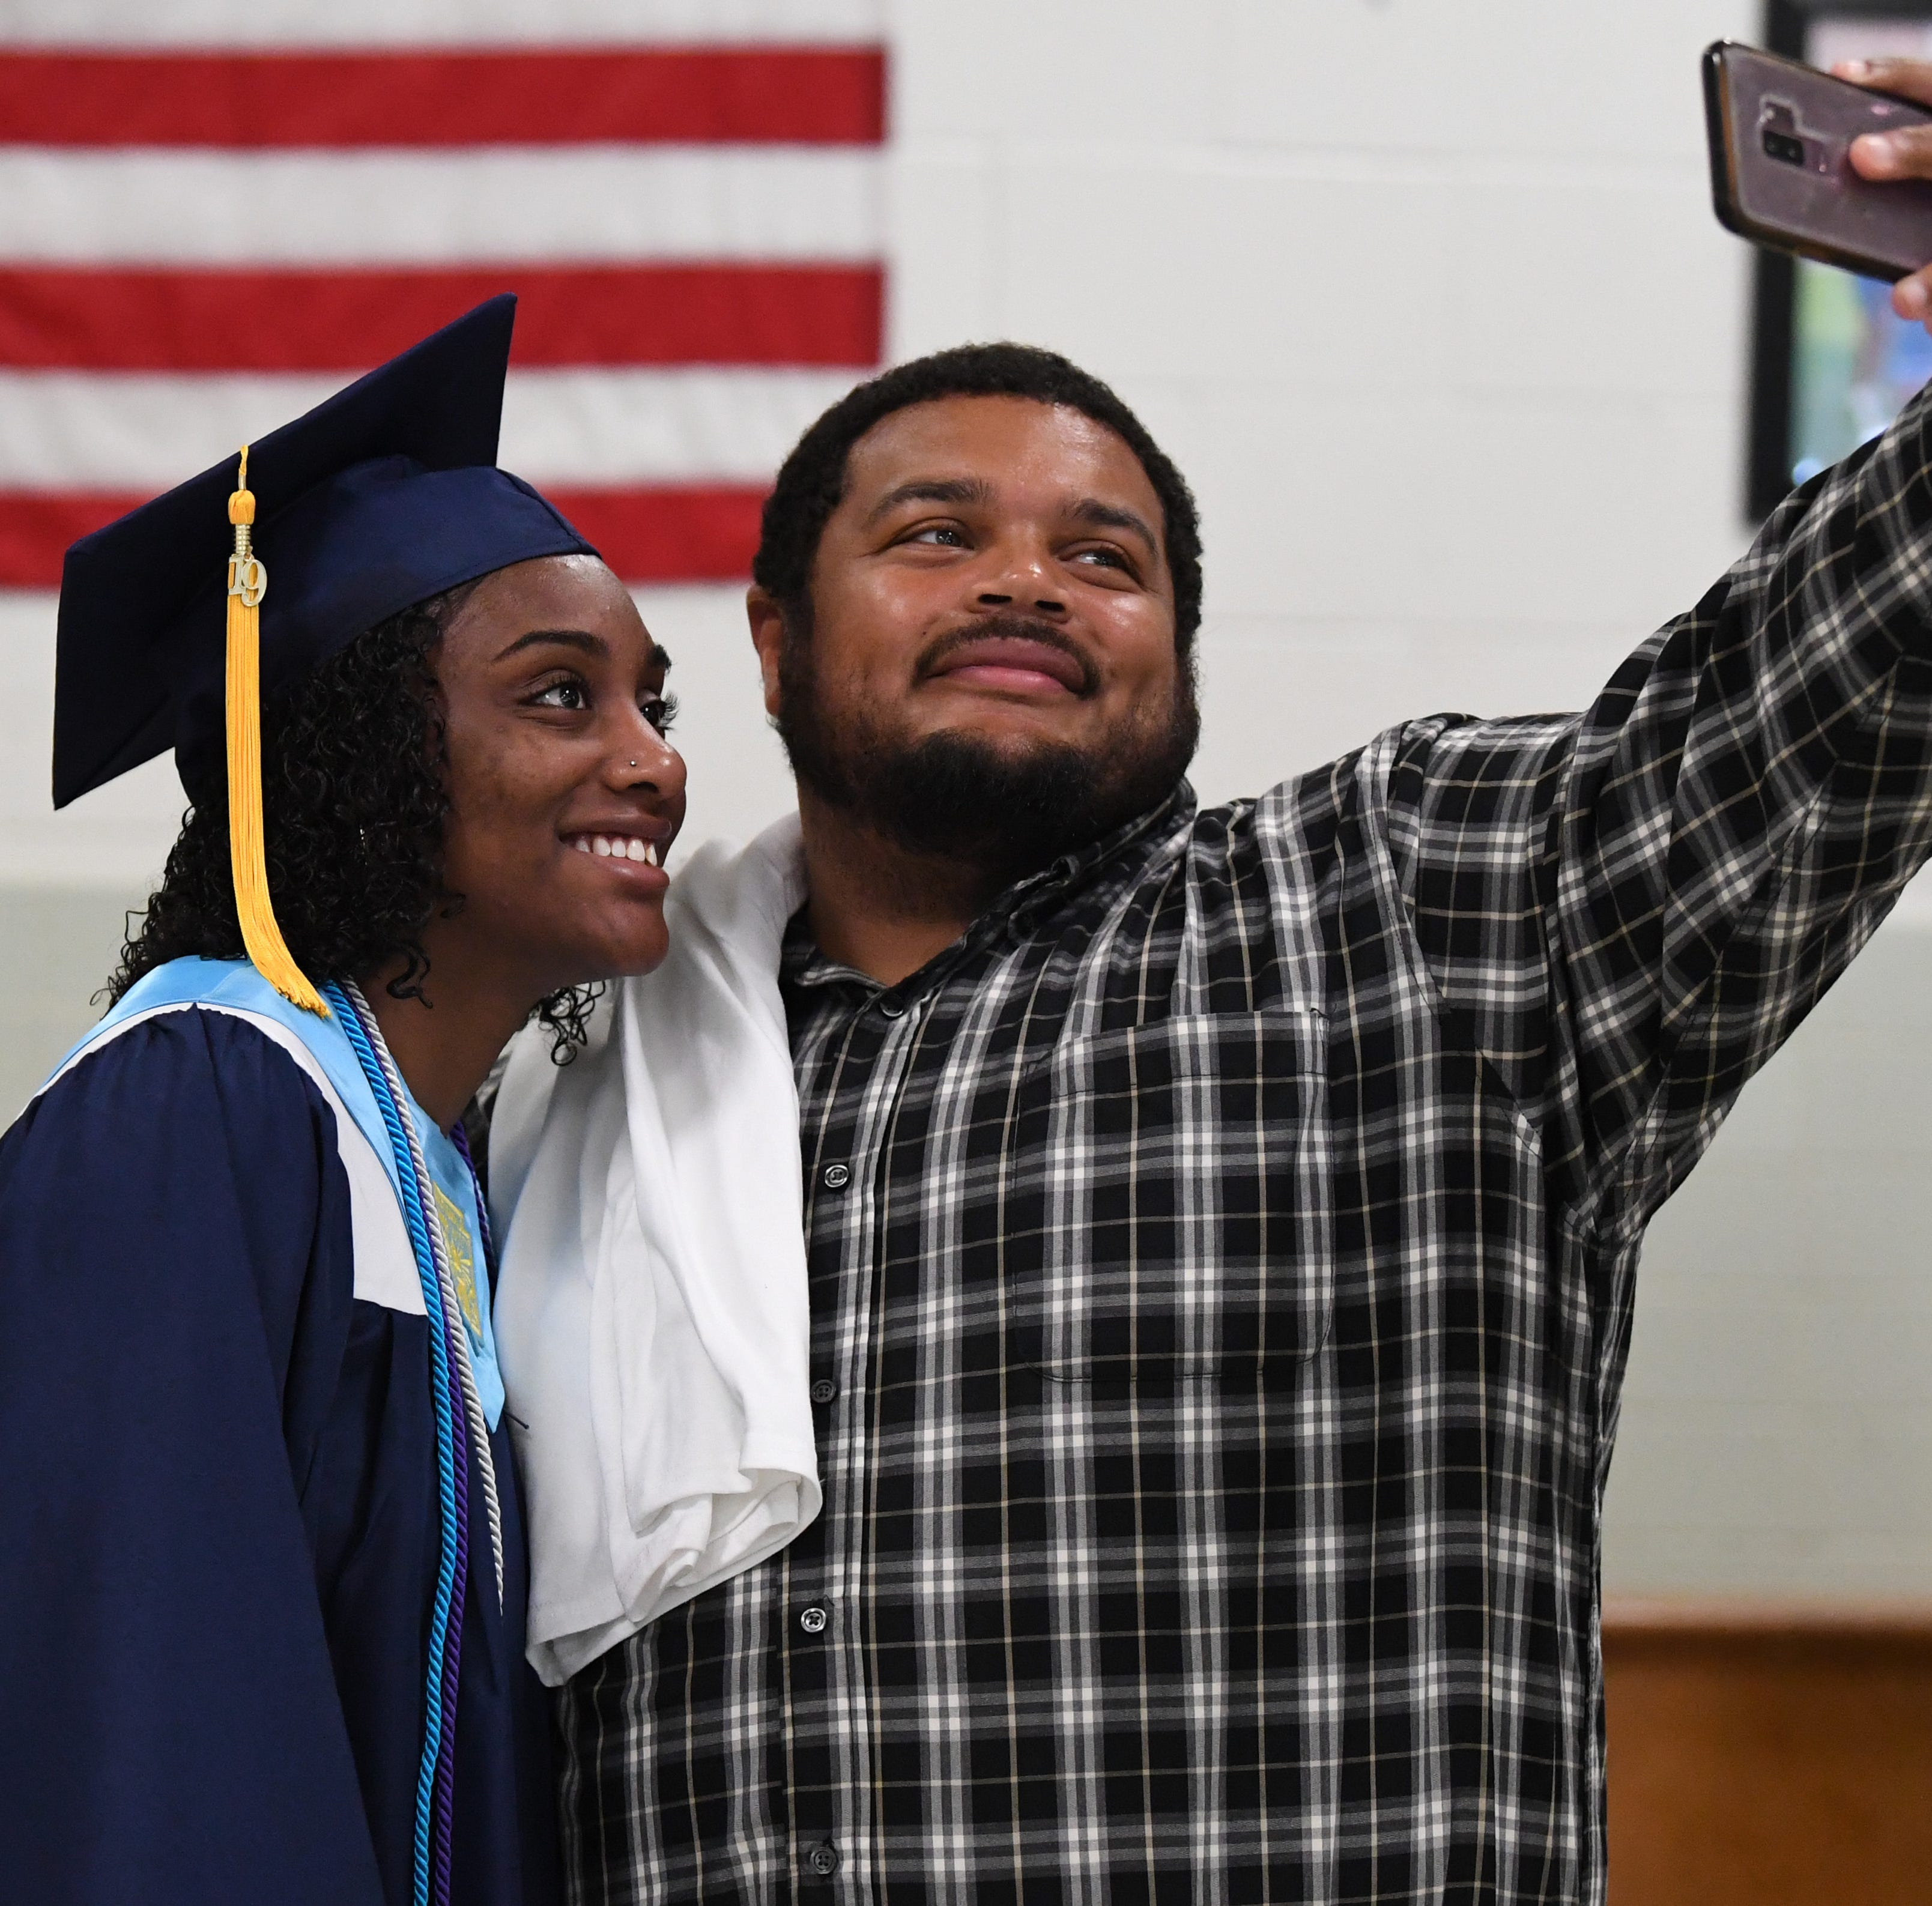 Class of 2019 gets final diplomas from Robert E. Lee High School